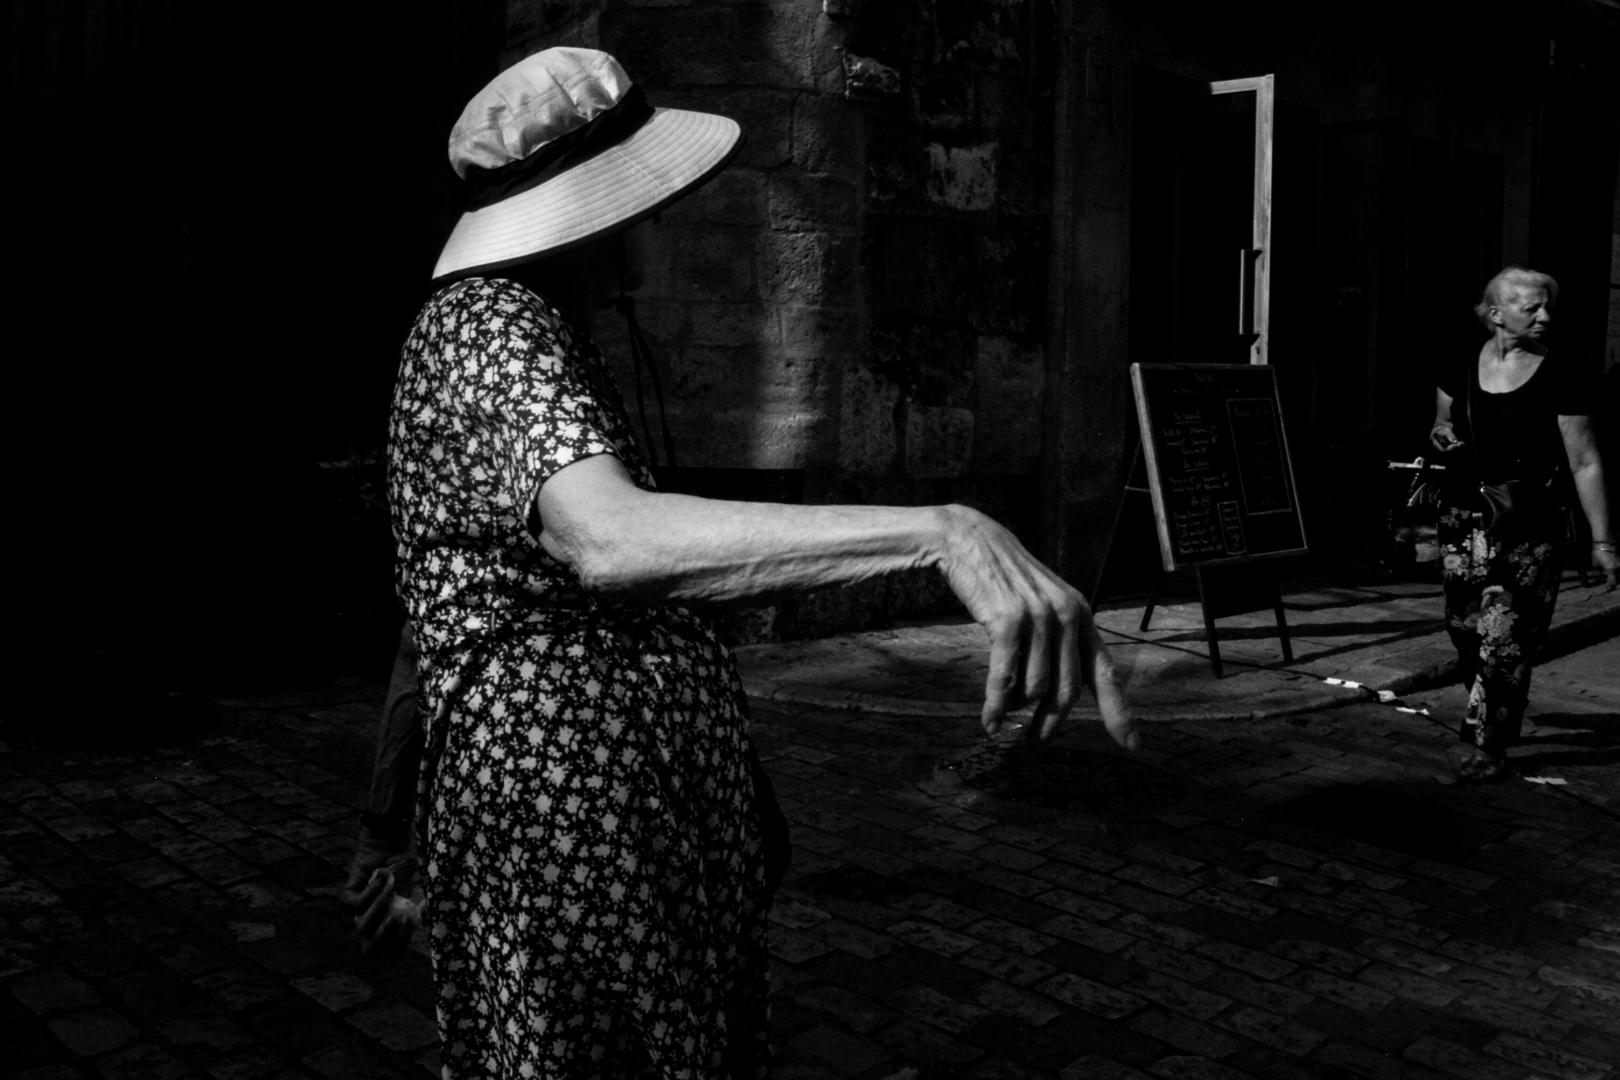 jeff-chane-mouye-street-photography-Aix-en-Provence-586